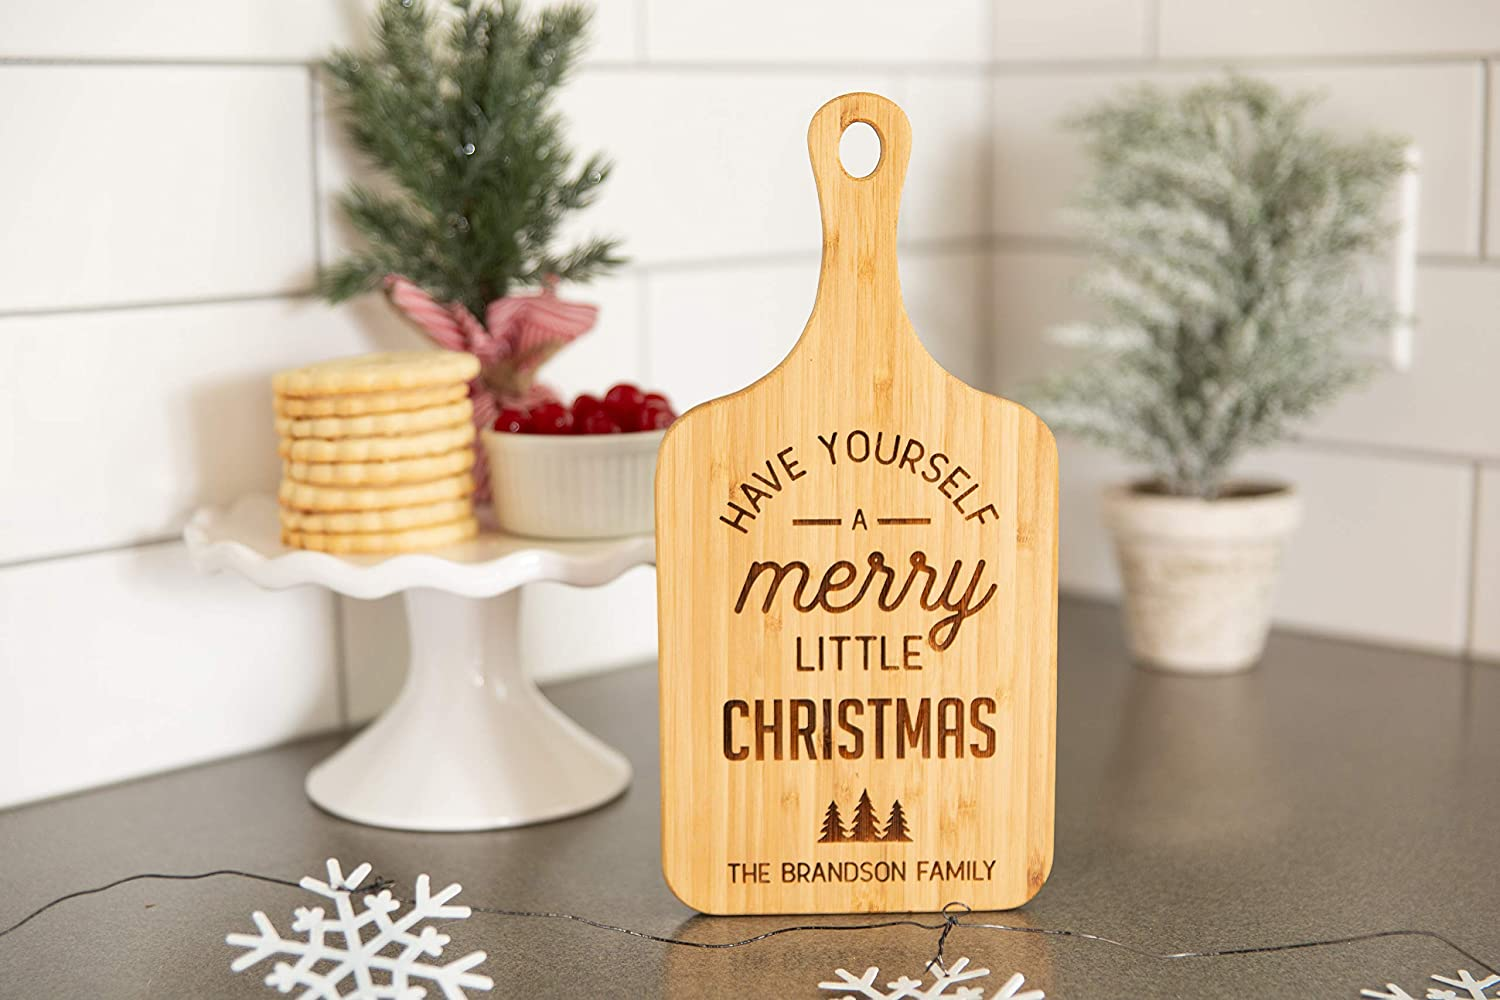 Personalized Christmas Cutting Board, Kitchen Gift for Couples and Family (5 x 11 Bamboo Paddle Shaped, Have Yourself a Merry Little Christmas Design)